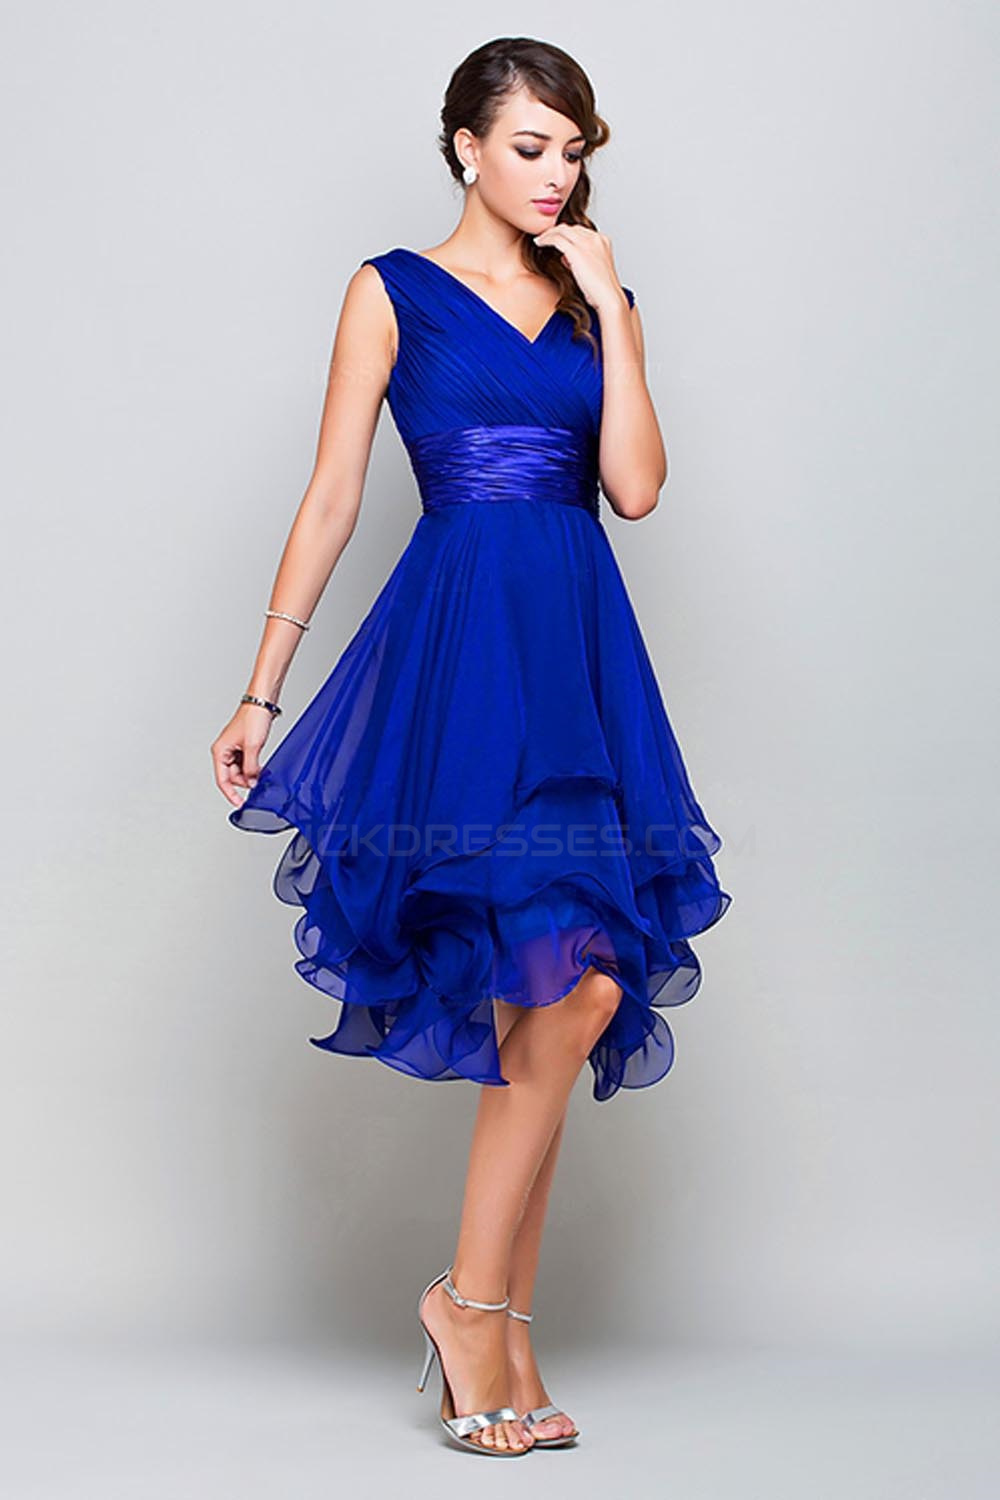 34f7f6e25070 A-Line Princess V-Neck Short Royal Blue Chiffon Prom Bridesmaid Party  Dresses ED010372